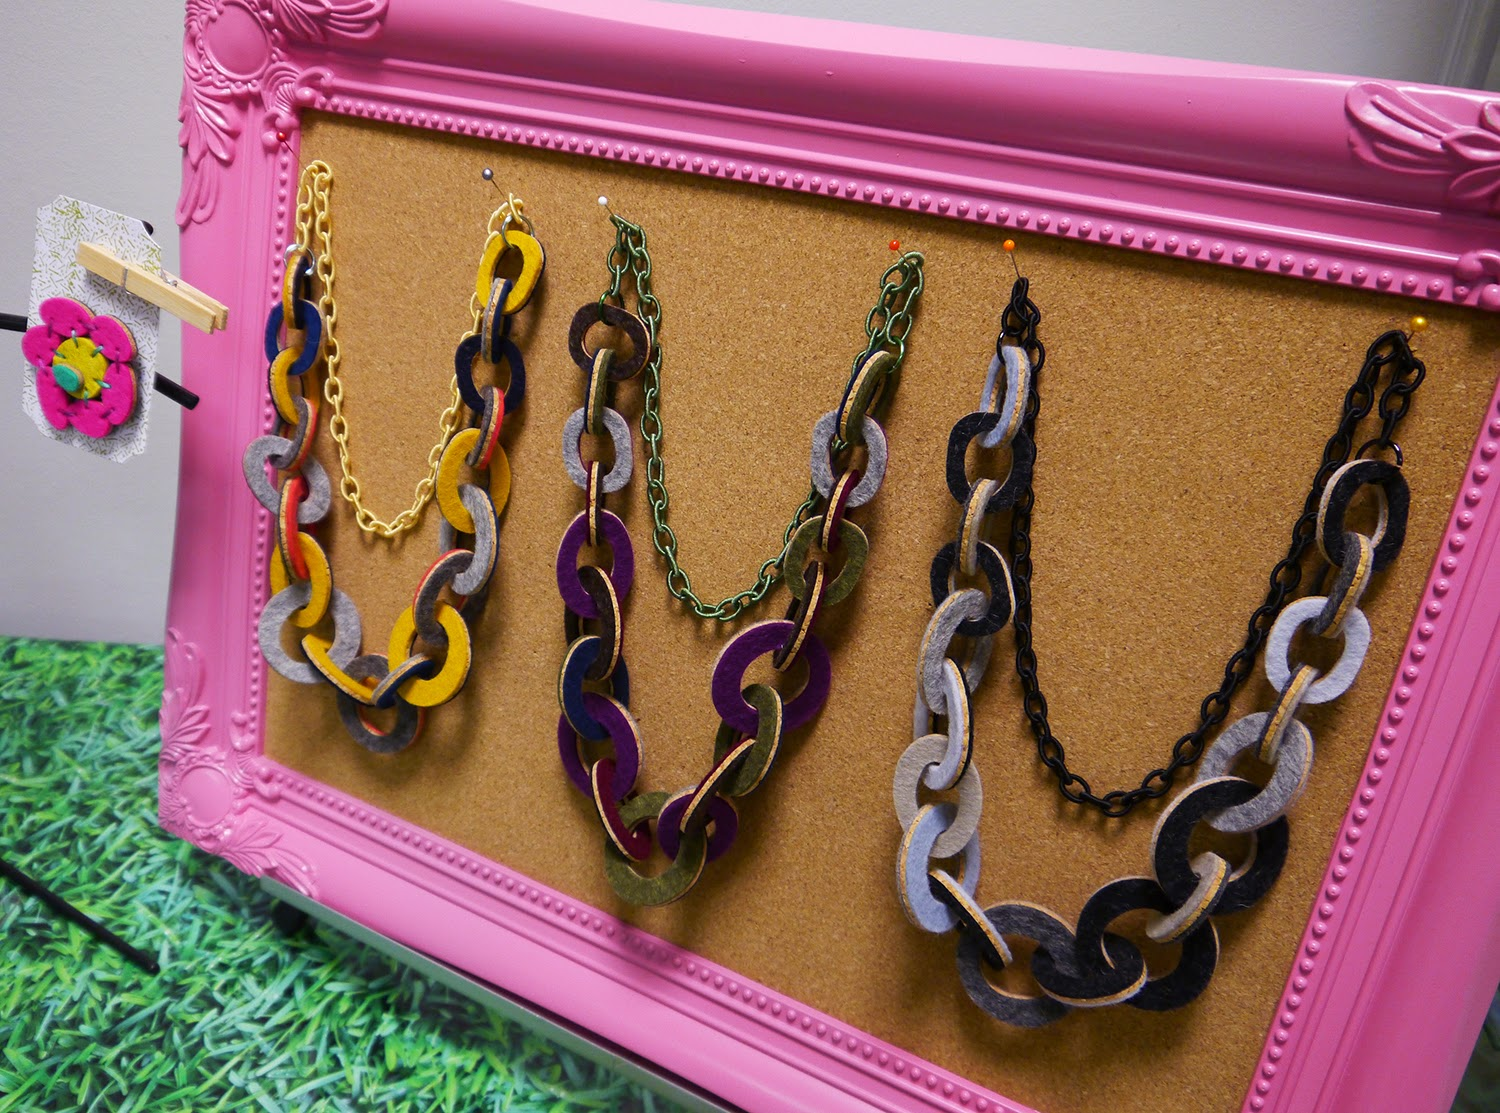 Colourful jewellery, Syrah Jay Jewellery, Dundee Designer, Scottish Designer, Time Lifestyle Boutique, Shop Local, Pop Up Shop